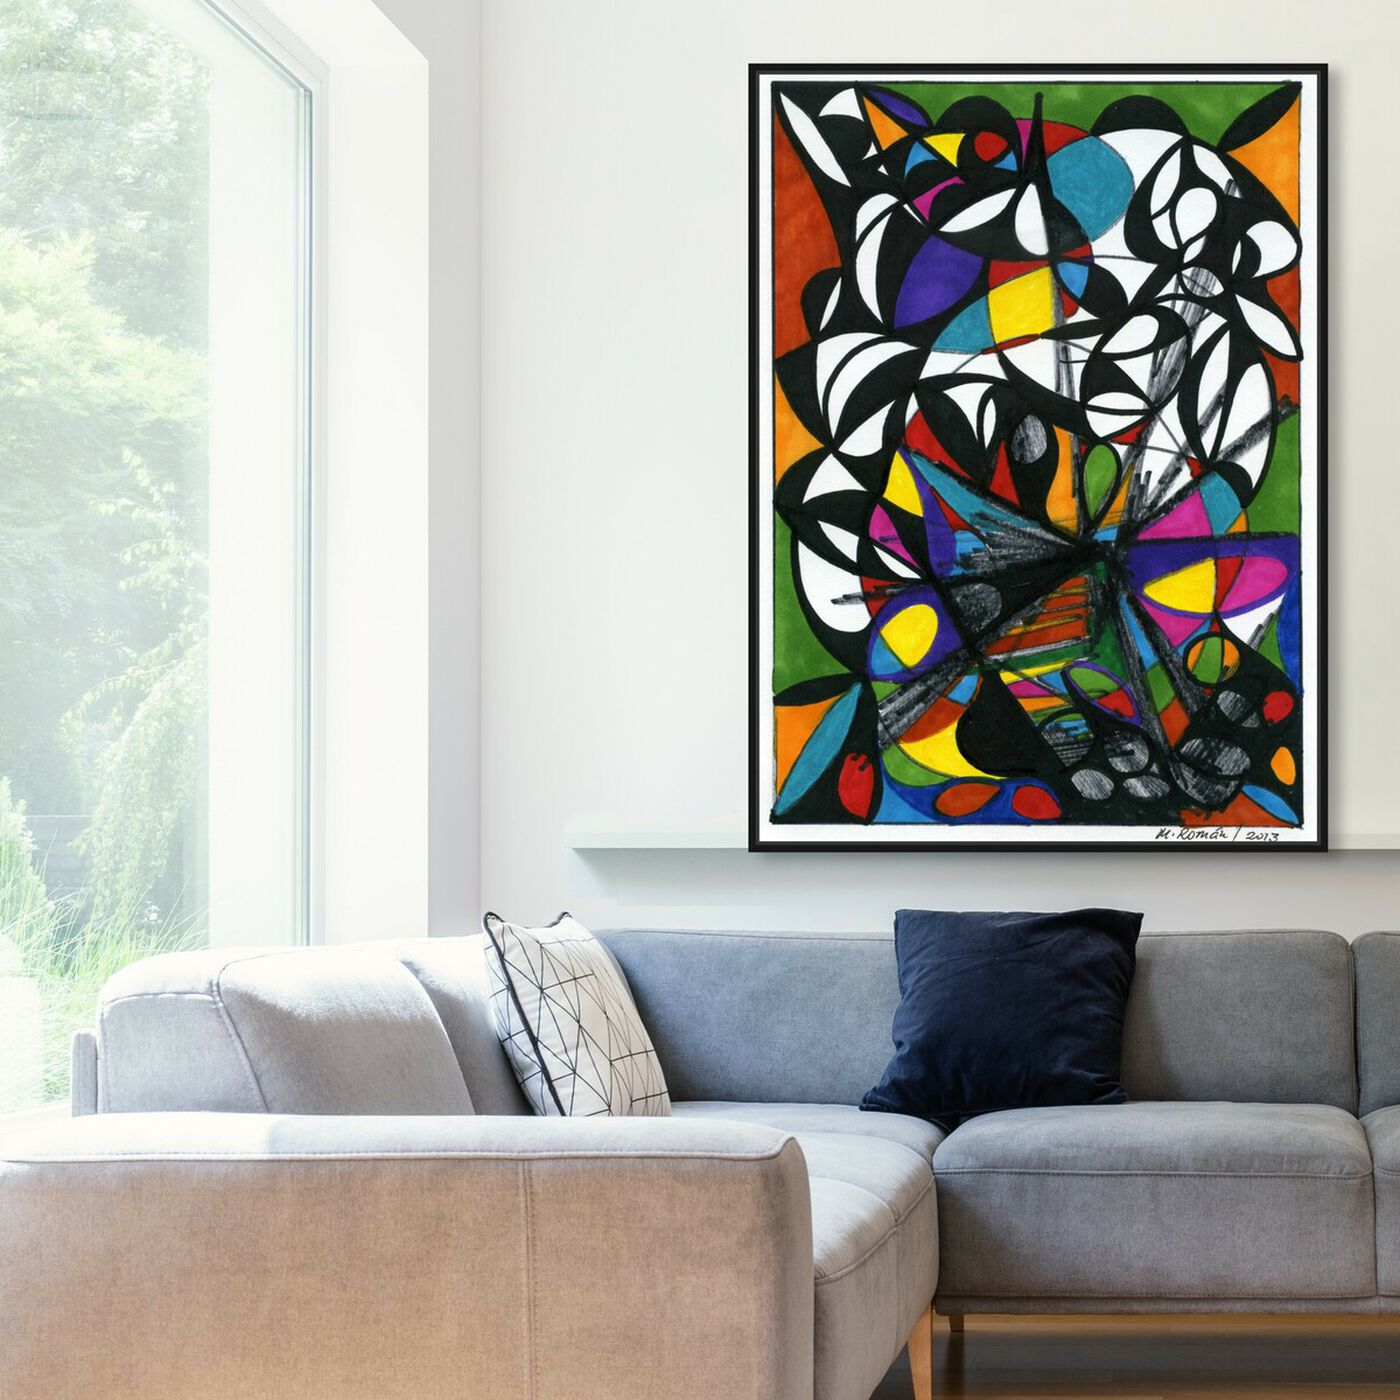 Hanging view of At Dusk featuring abstract and geometric art.